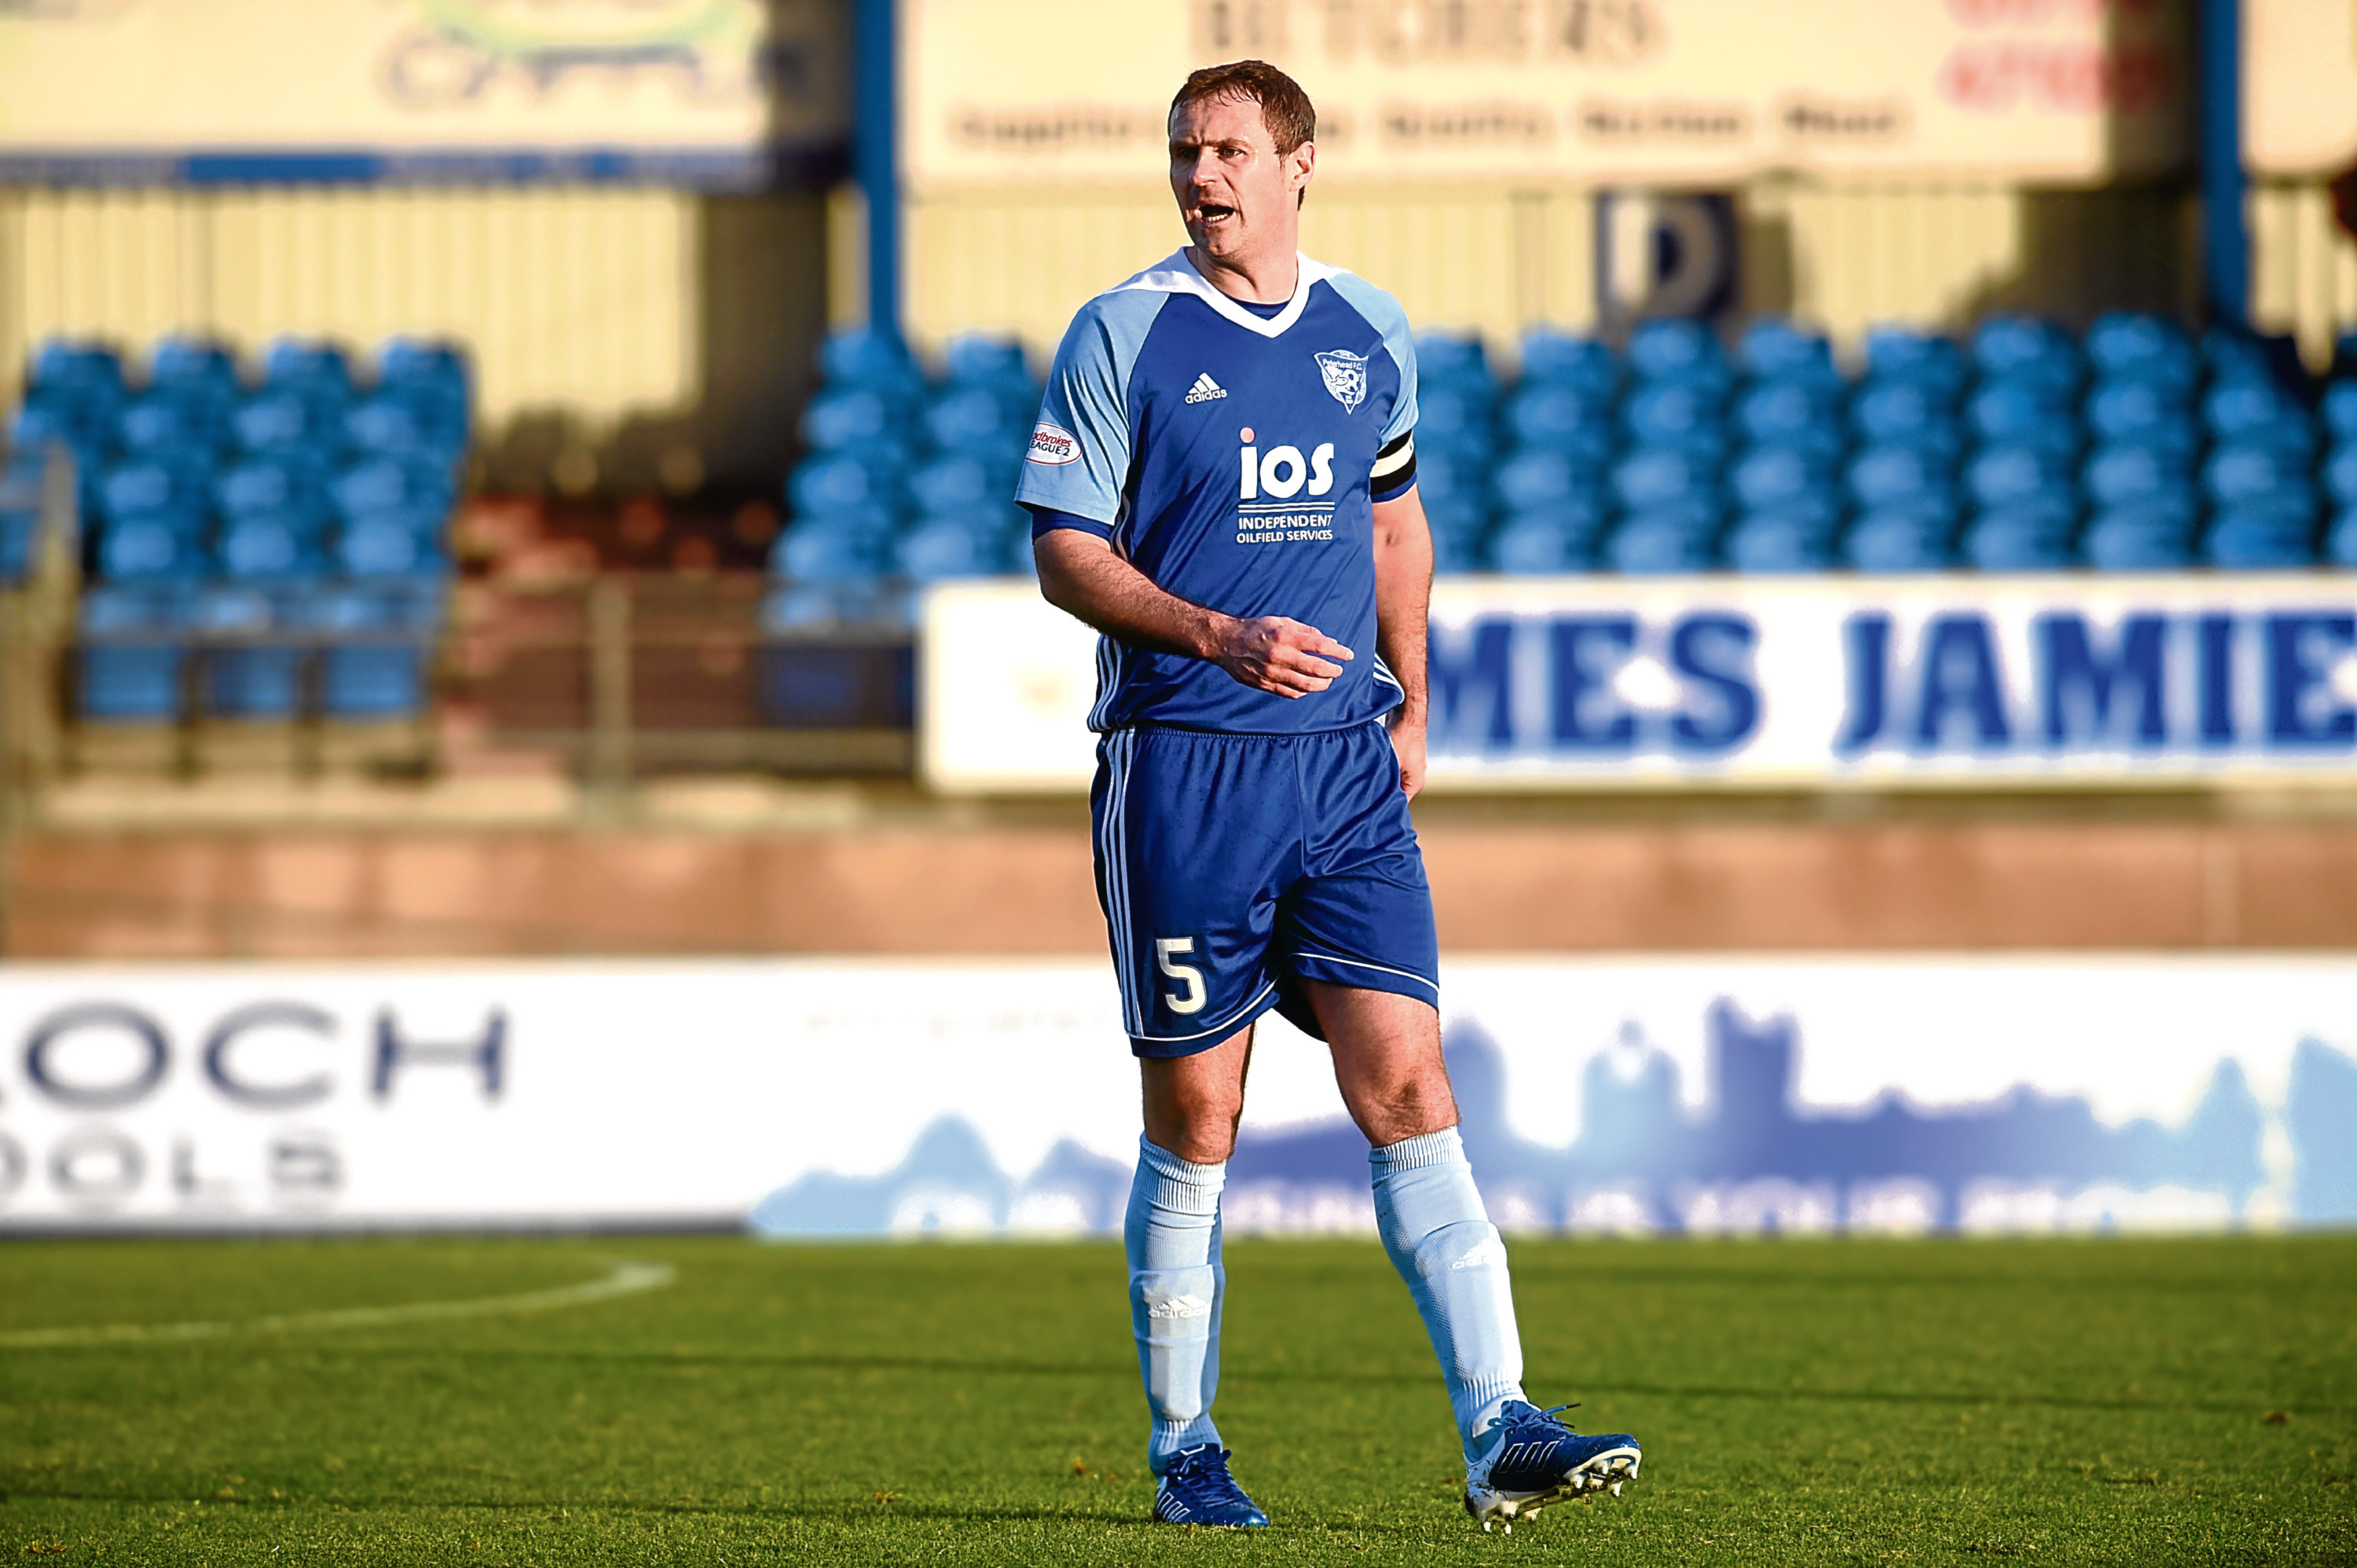 Pictured is Peterhead's David McCracken. Picture by DARRELL BENNS.